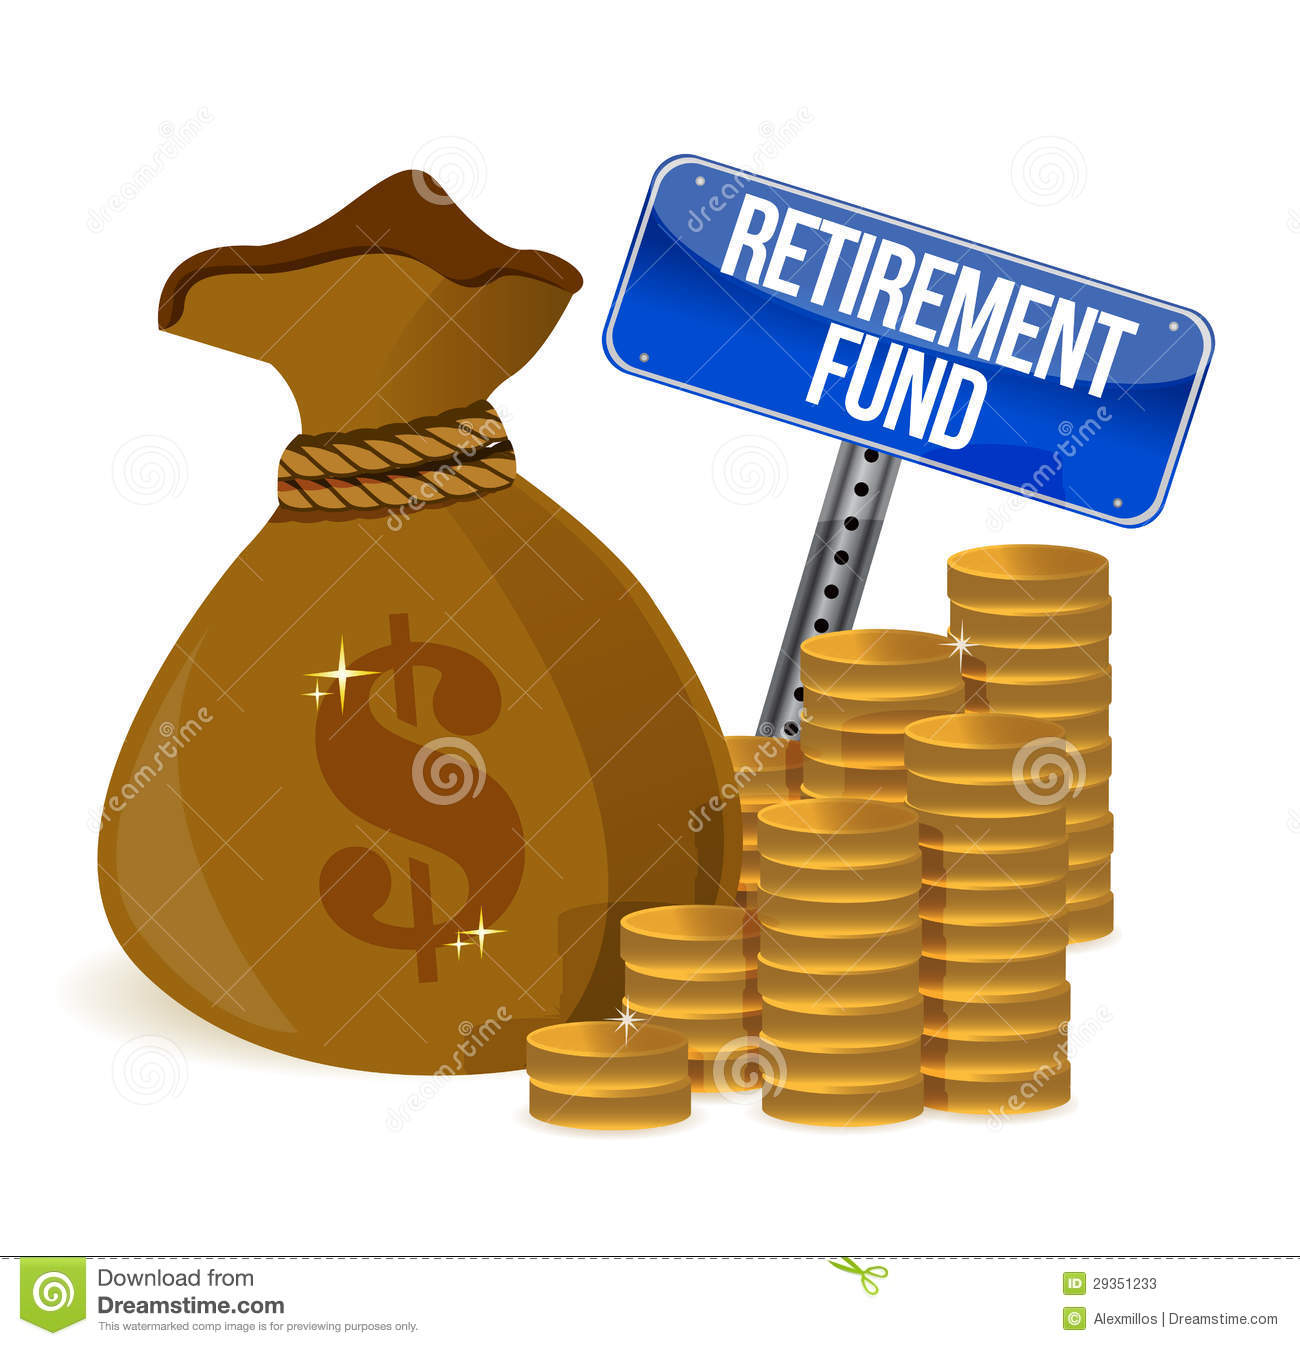 Retirement fund money bag illustration design over a white background.